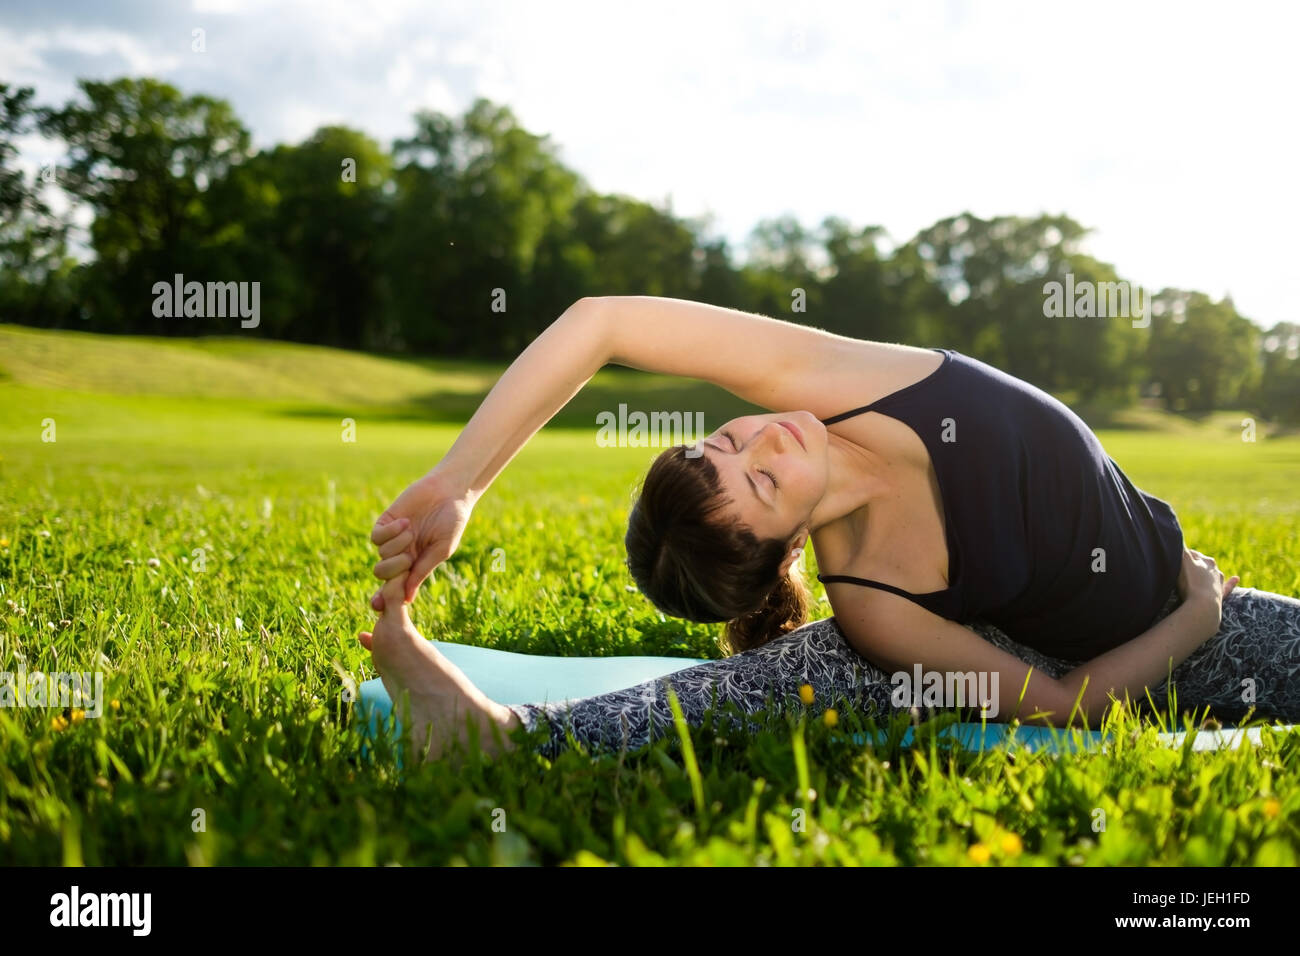 Woman practices yoga asana in park in the morning. - Stock Image